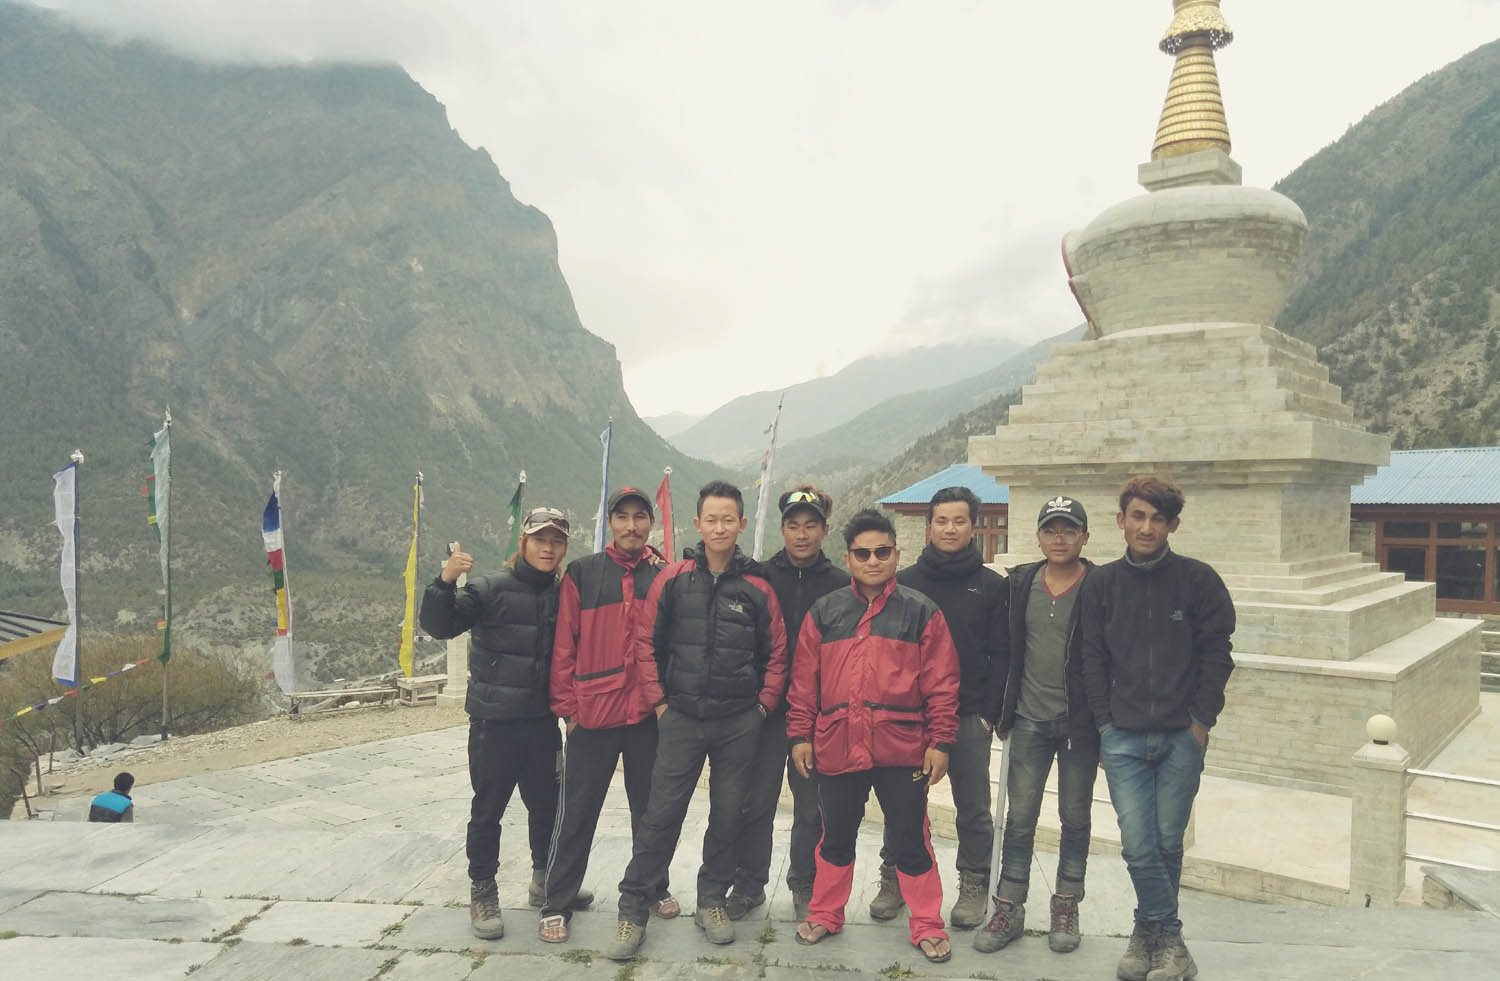 Guides and Porters in trekking